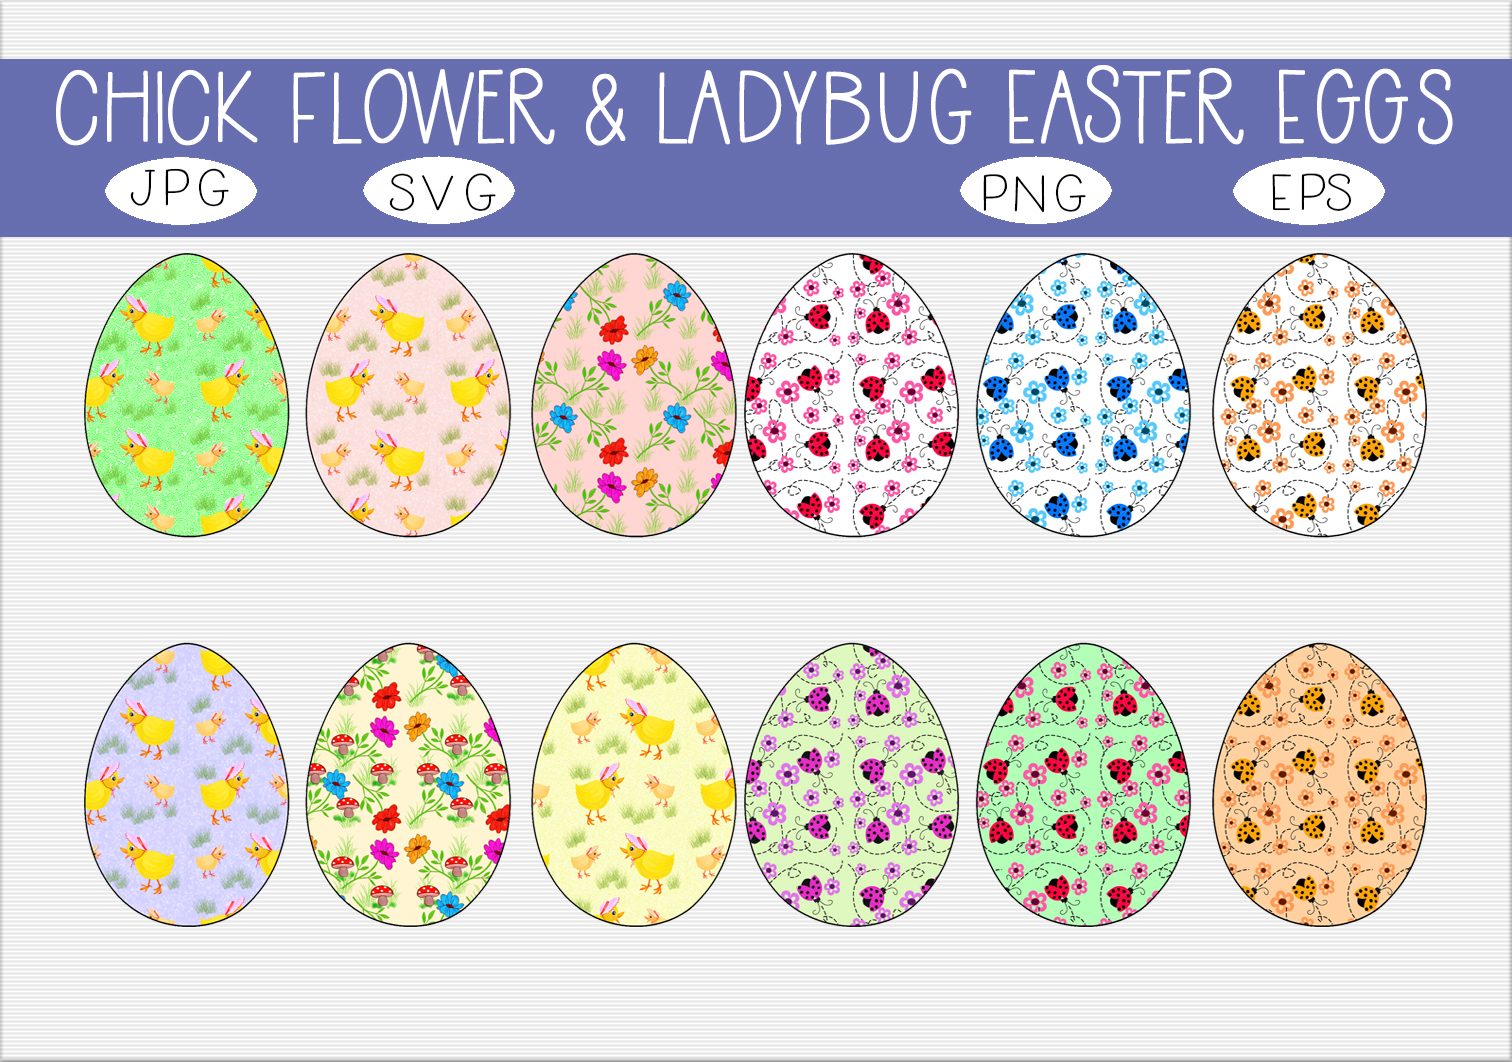 Download Free Chicks Flowers Ladybugs Easter Eggs Graphic By Capeairforce for Cricut Explore, Silhouette and other cutting machines.